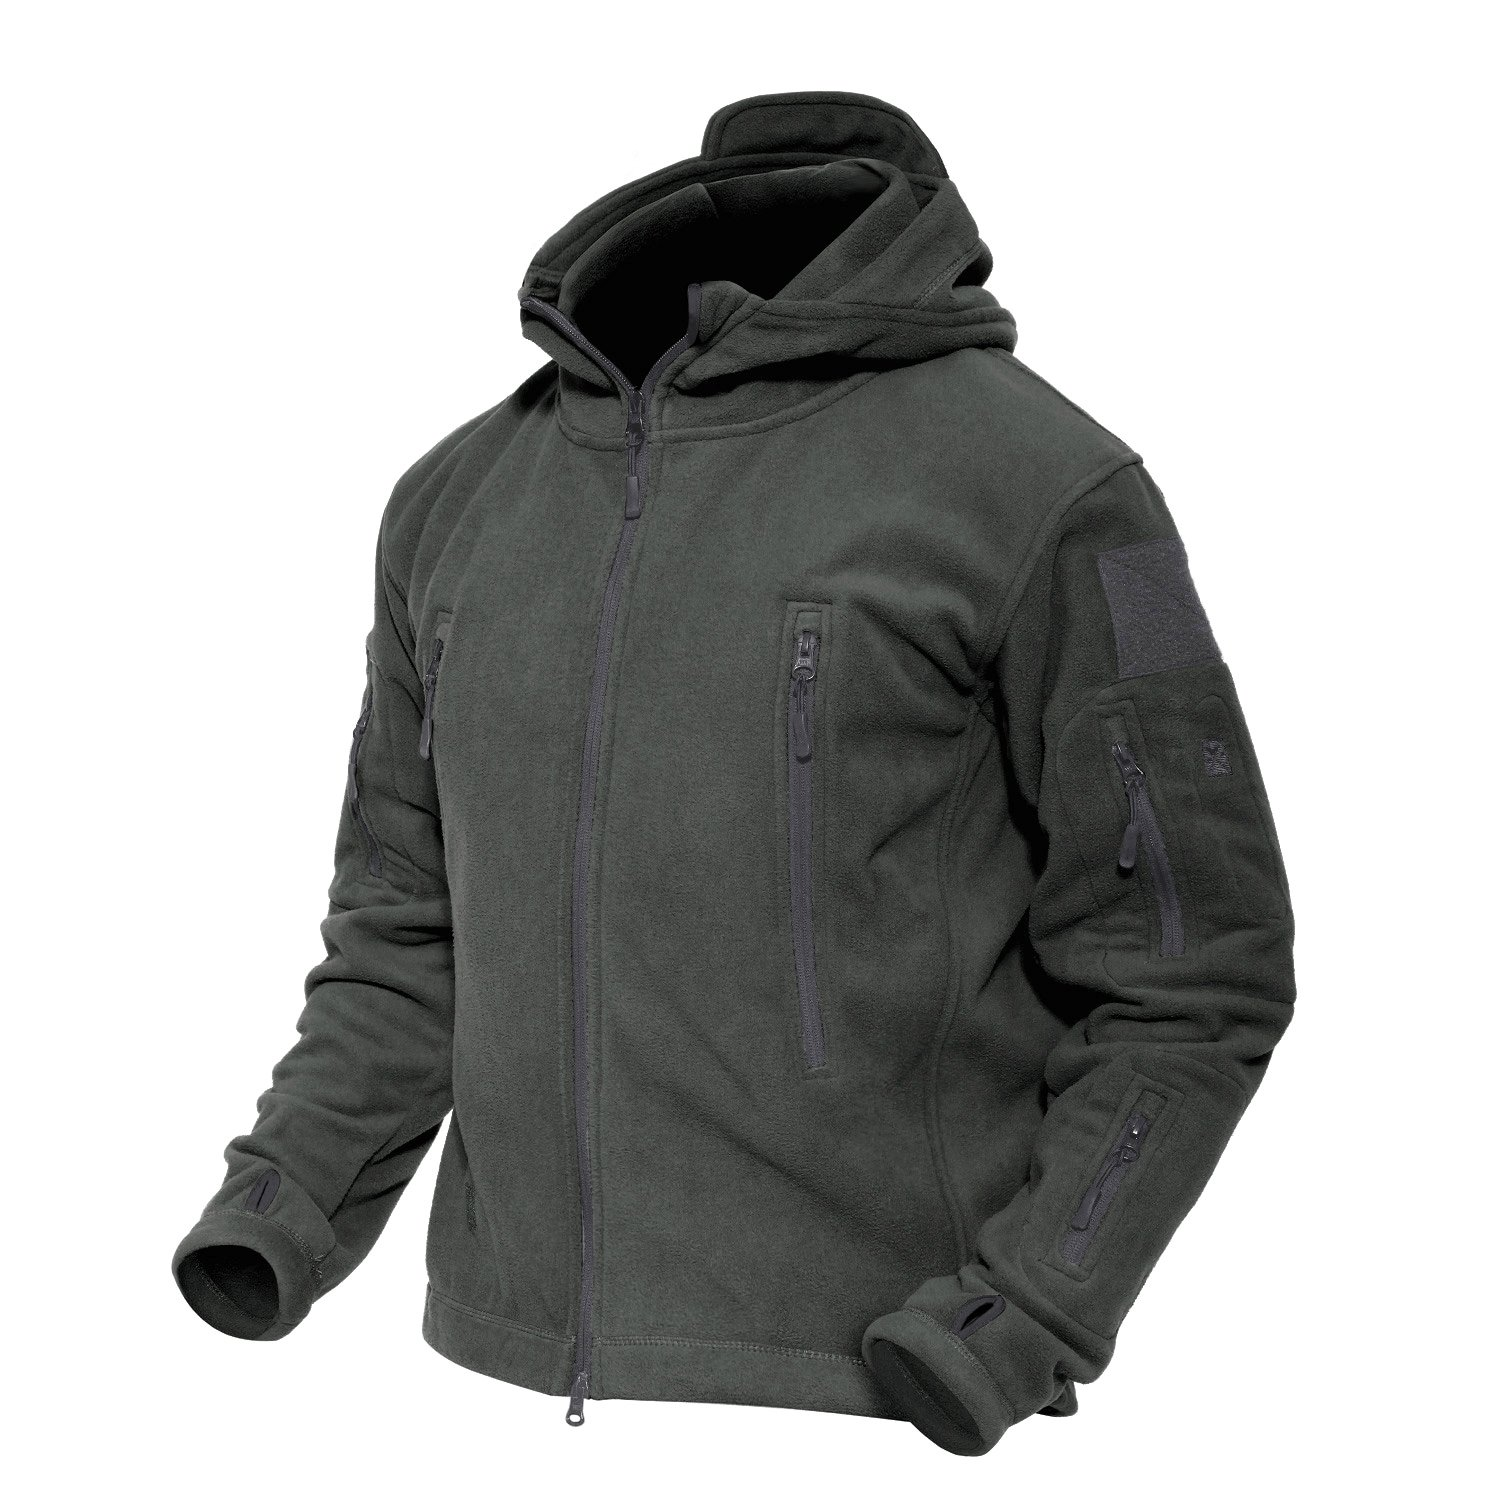 MAGCOMSEN Men 's Windproof Warm Military Tactical Fleece Jacket, Gray, US M (Fit Chest 36''- 39'') by MAGCOMSEN